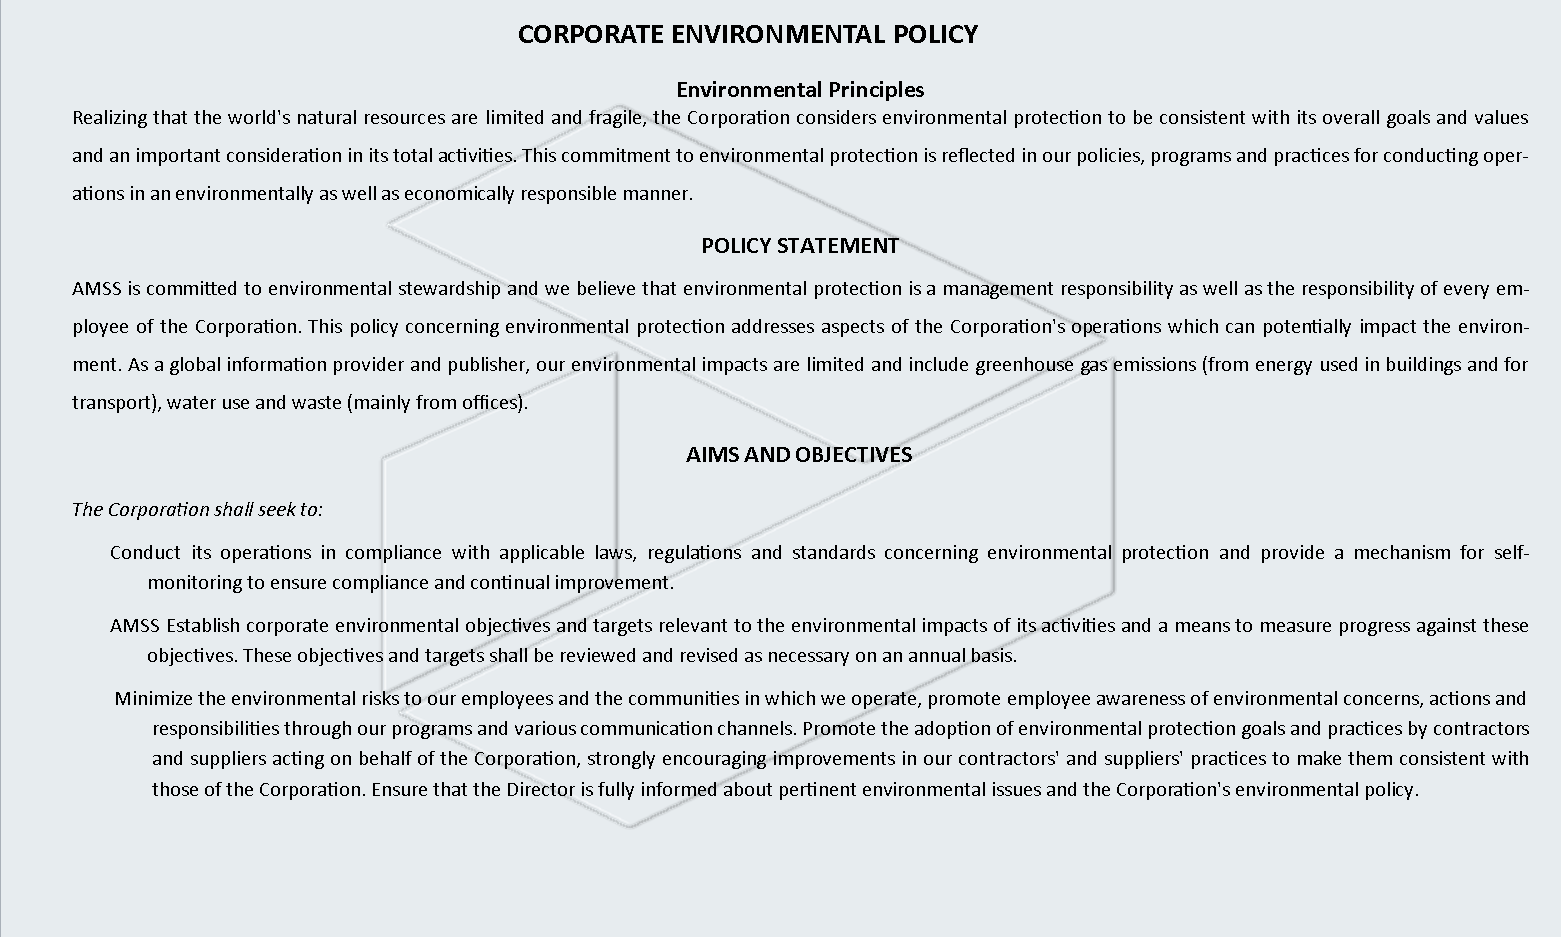 CORPORATE ENVIRONMENTAL POLICY1